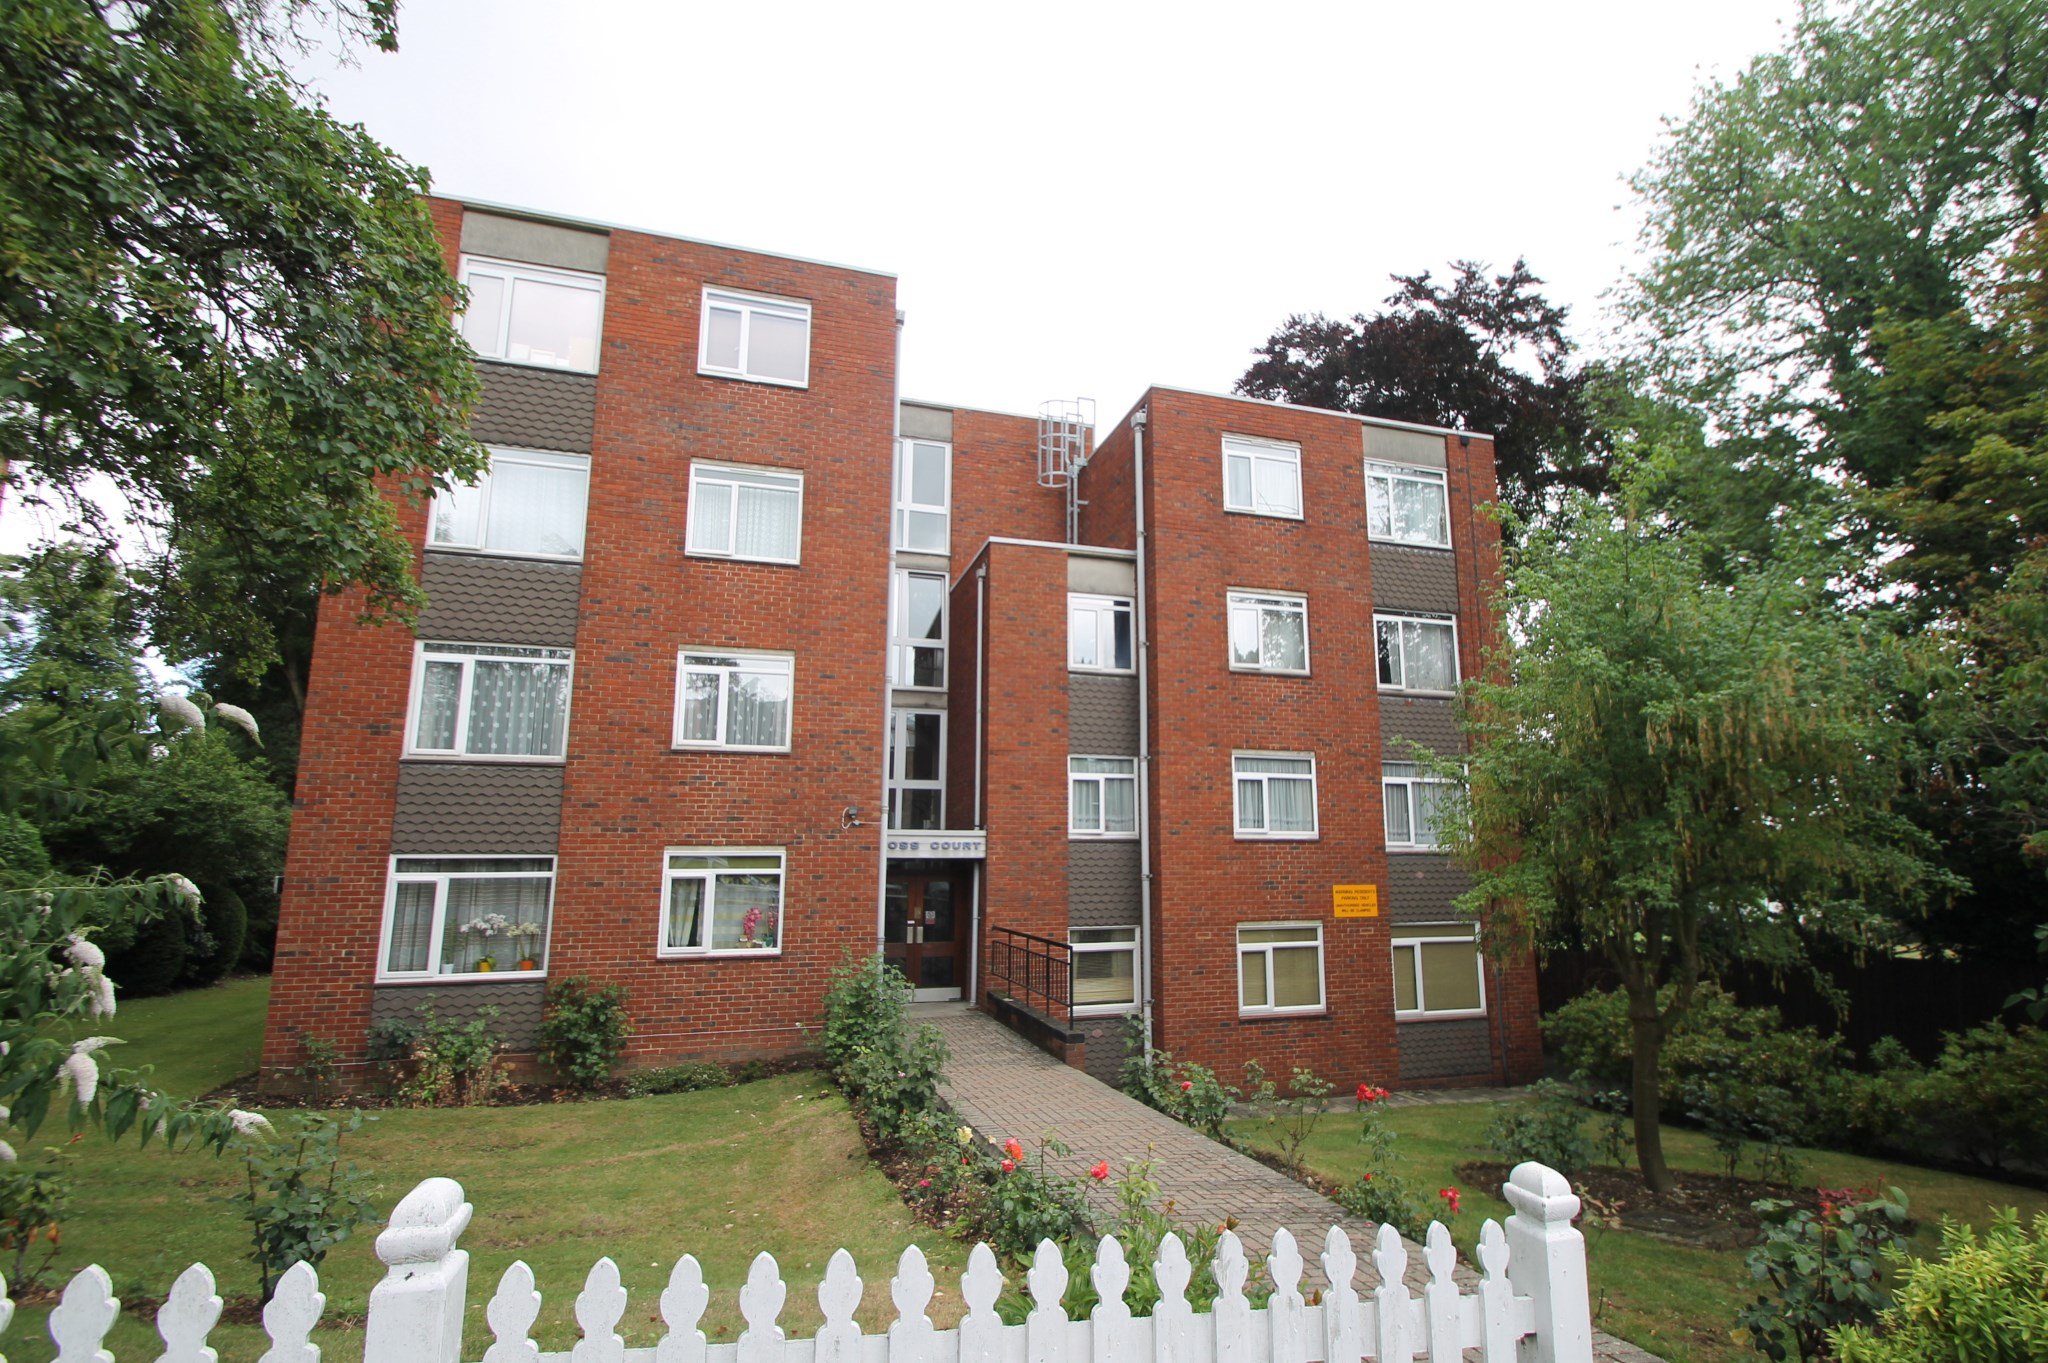 Ross Court, 10 Haling Park Road, South Croydon, CR2